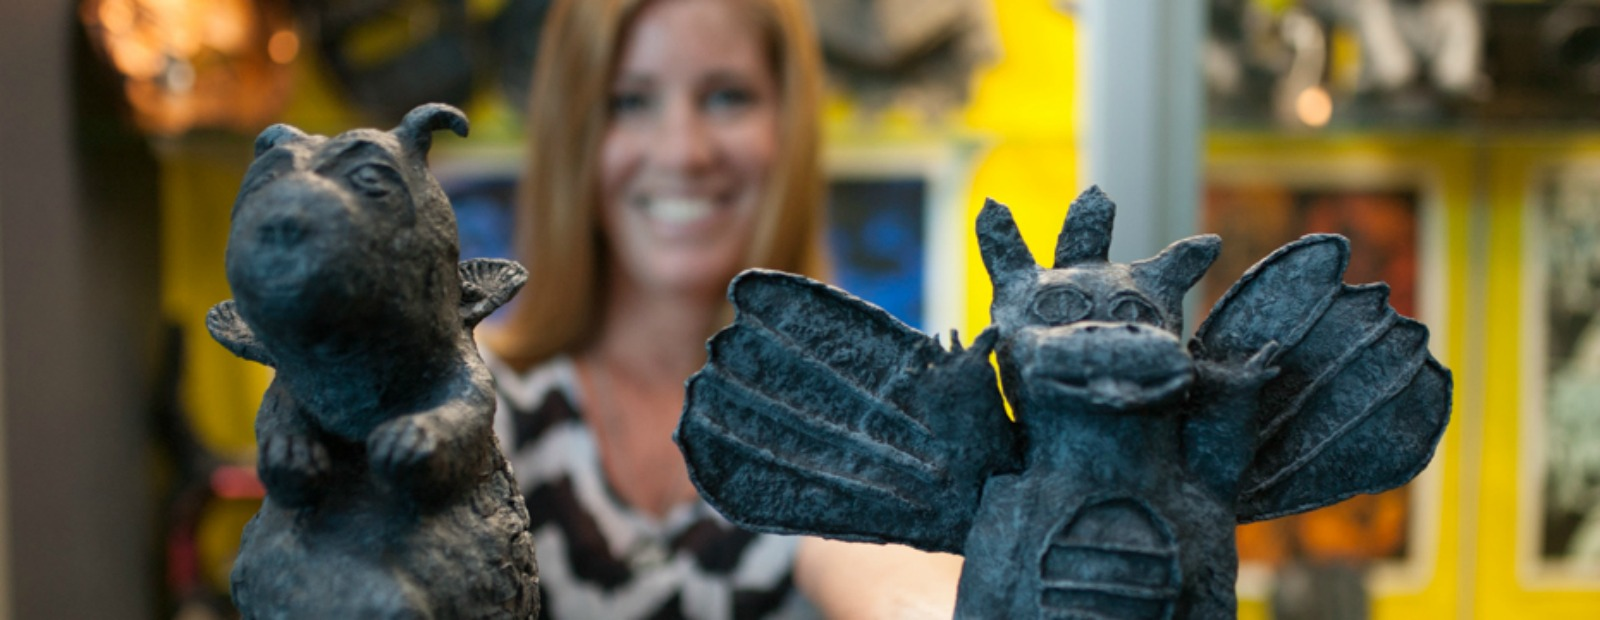 Student-made gargoyles will be on display at Art In The Park <span class='image-credits'>Heather Burt</span>